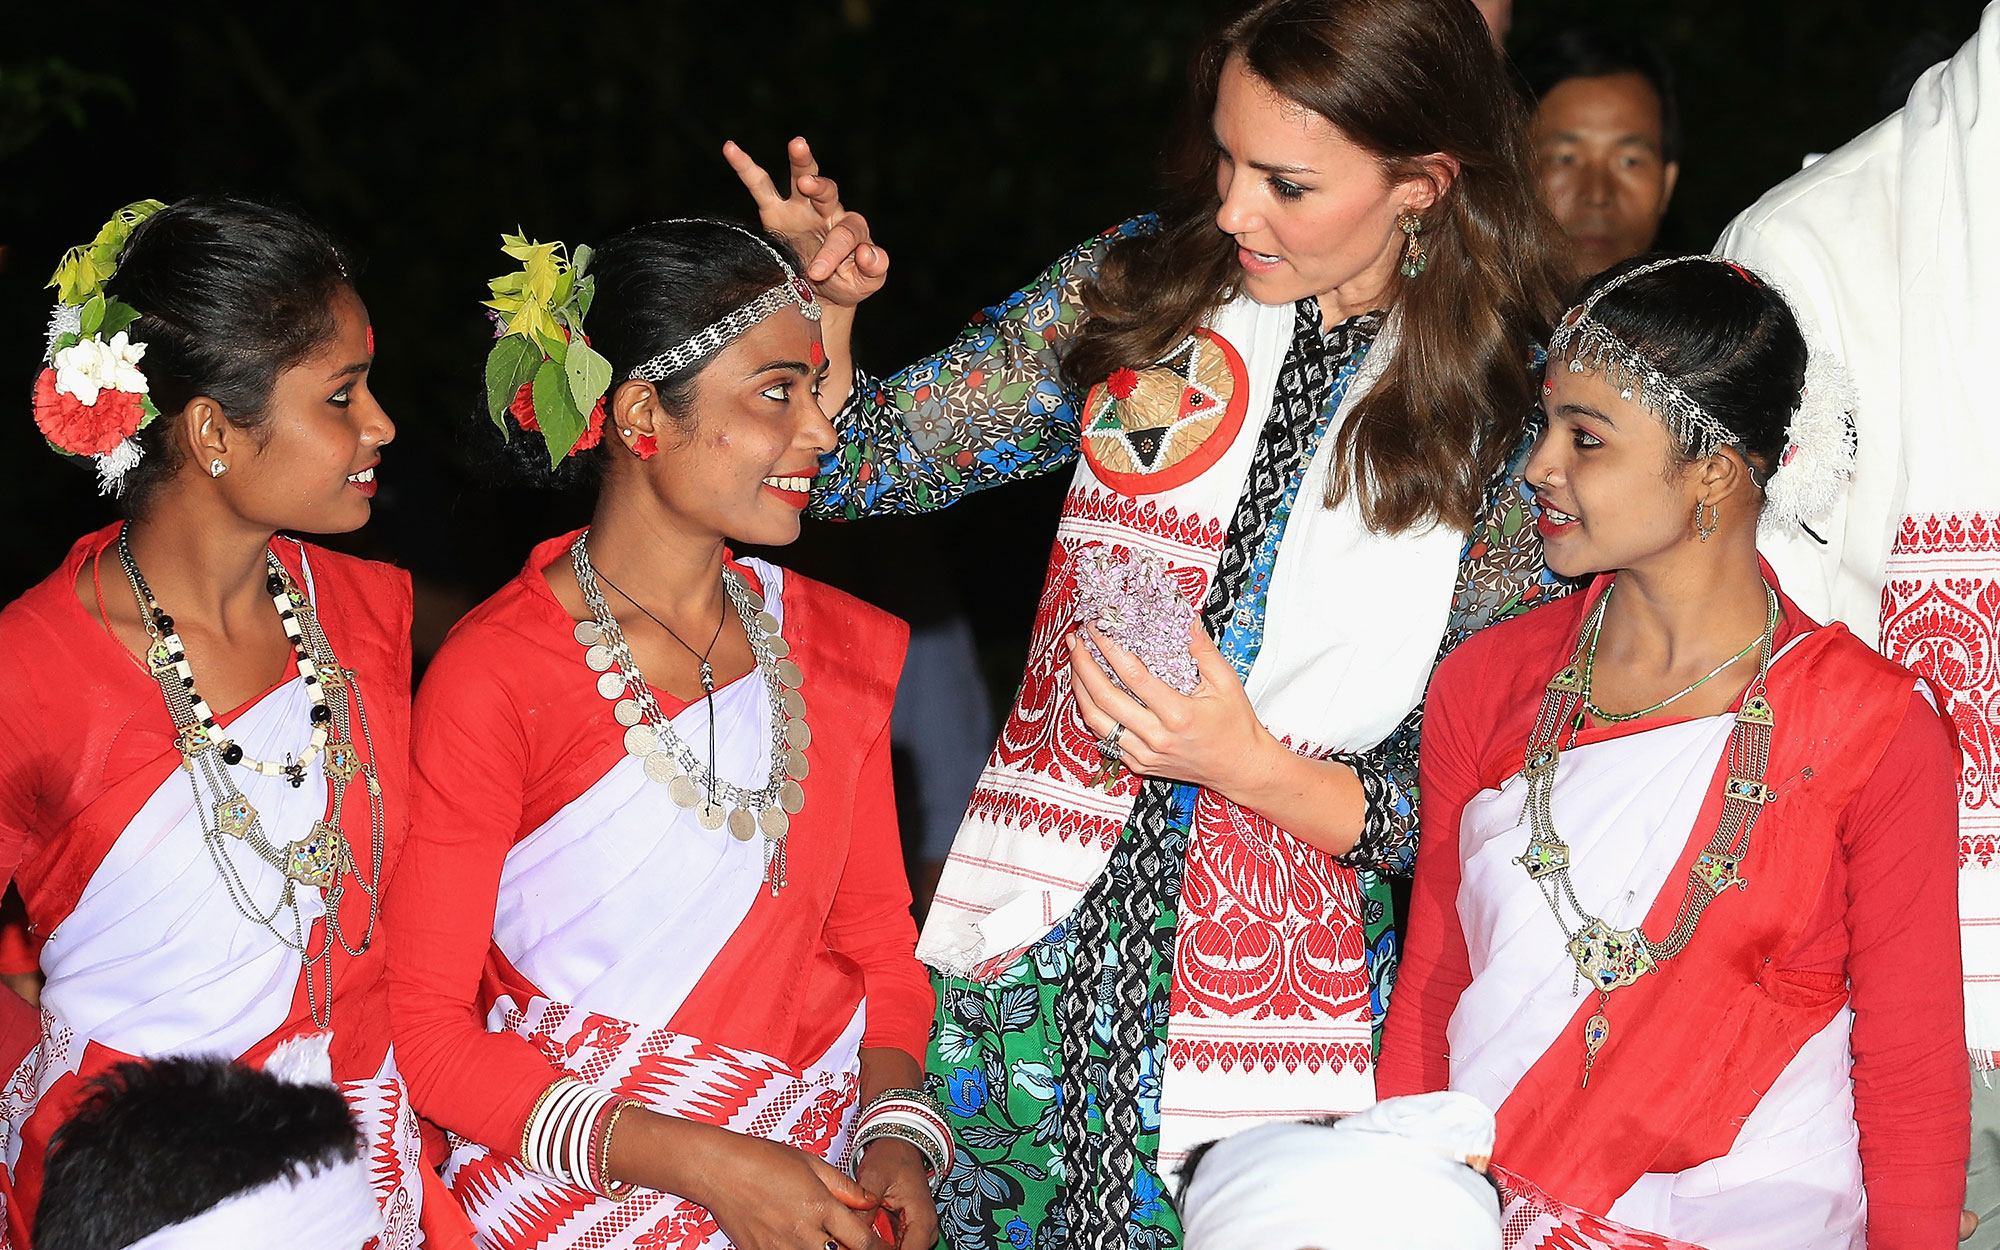 Prince William and Kate Middleton Embark on their Royal Tour of India and Bhutan: Enjoying a Performance